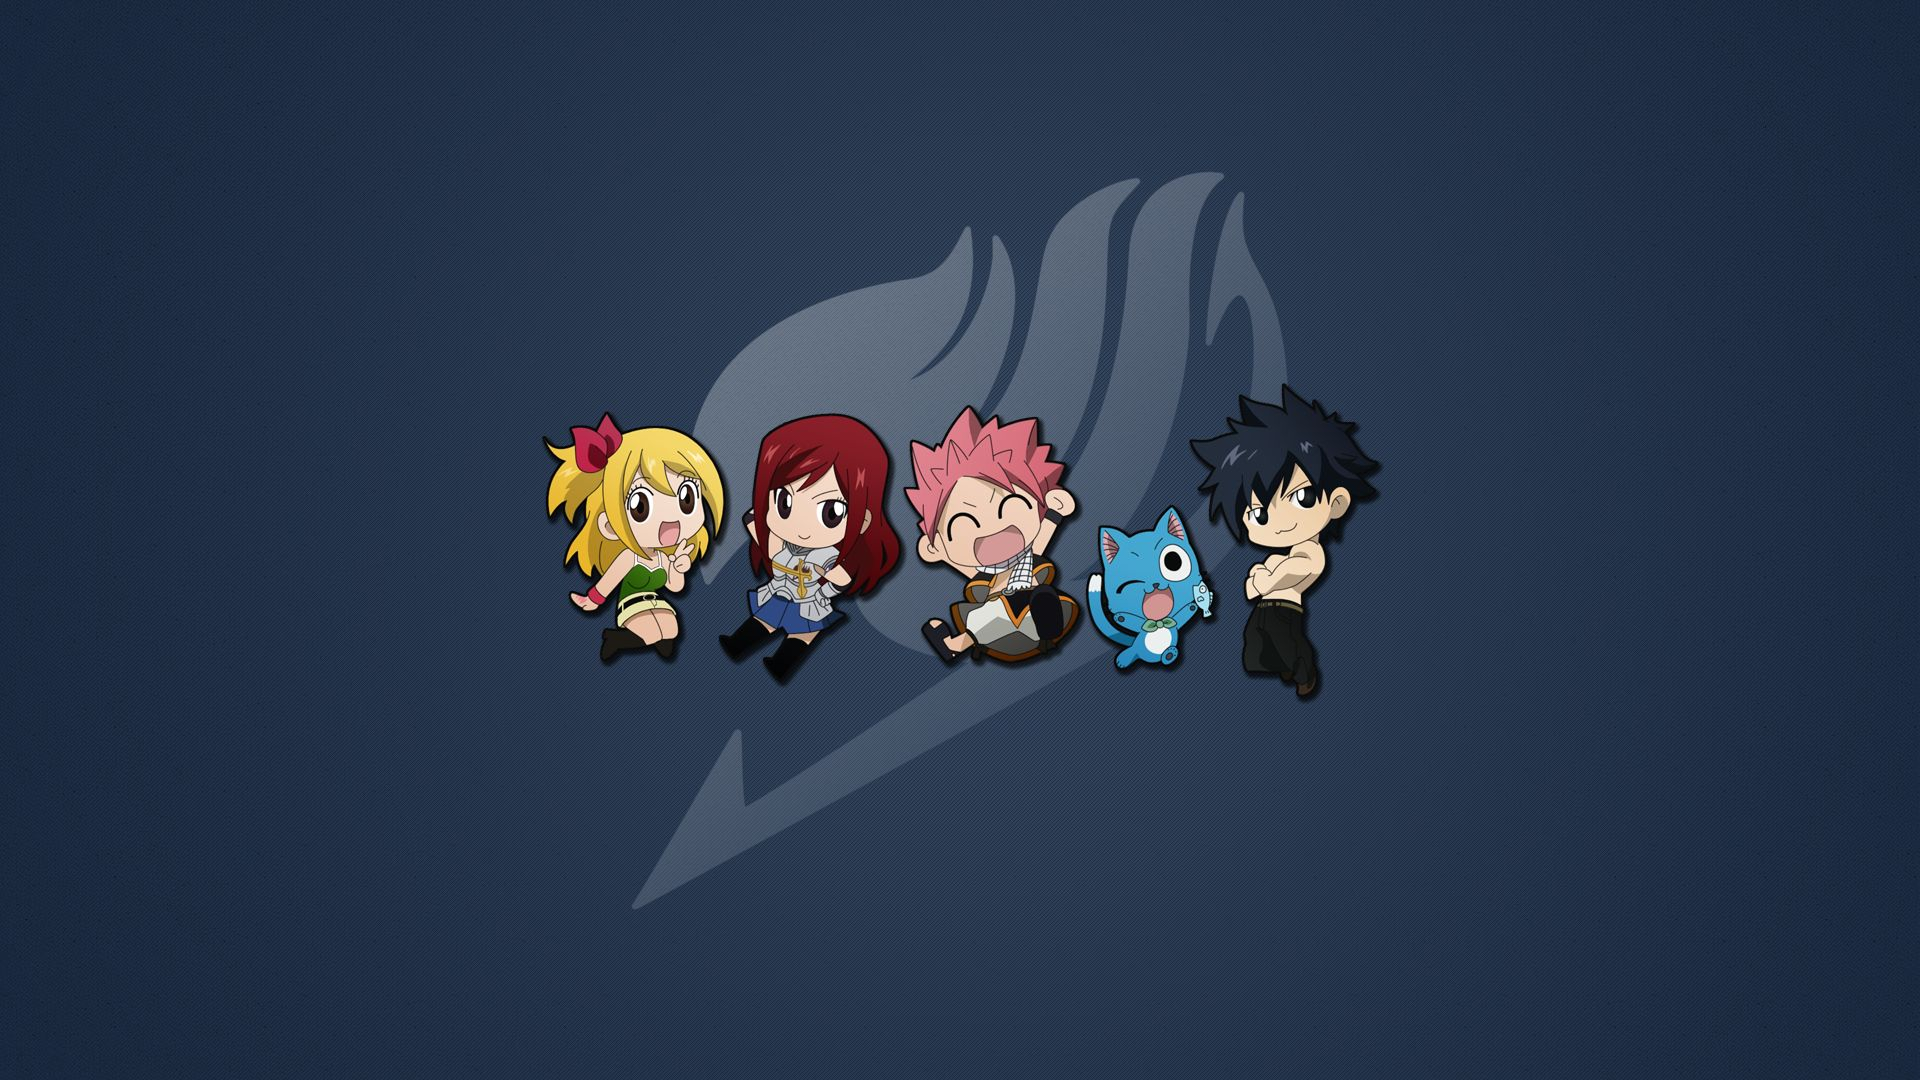 1920x1080 Fairy Tail Wallpapers and Background Images - stmed.net